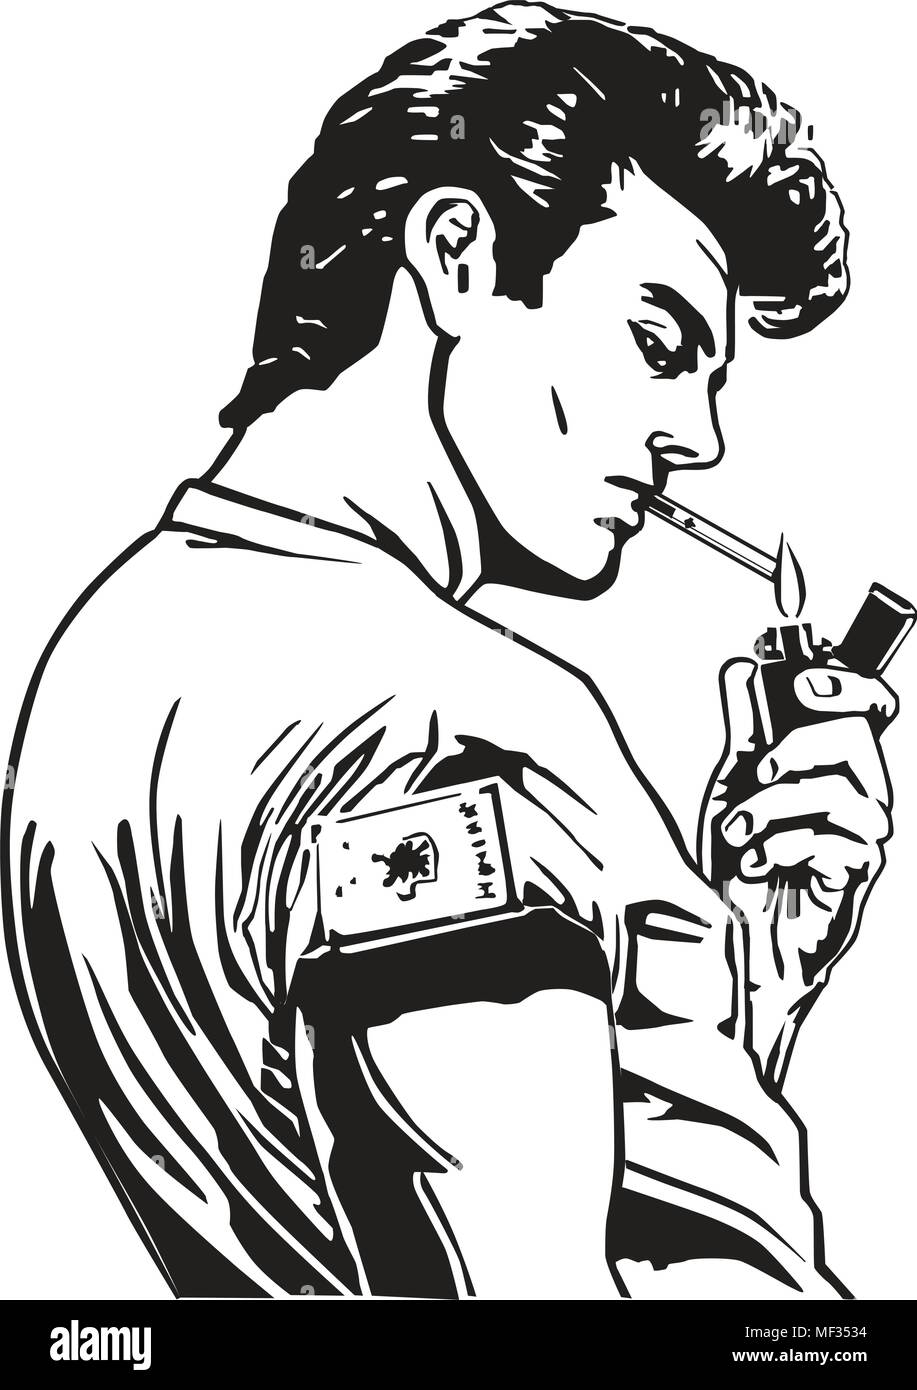 Greaser Lighting Cigarette - Retro Clipart Illustration - Stock Image